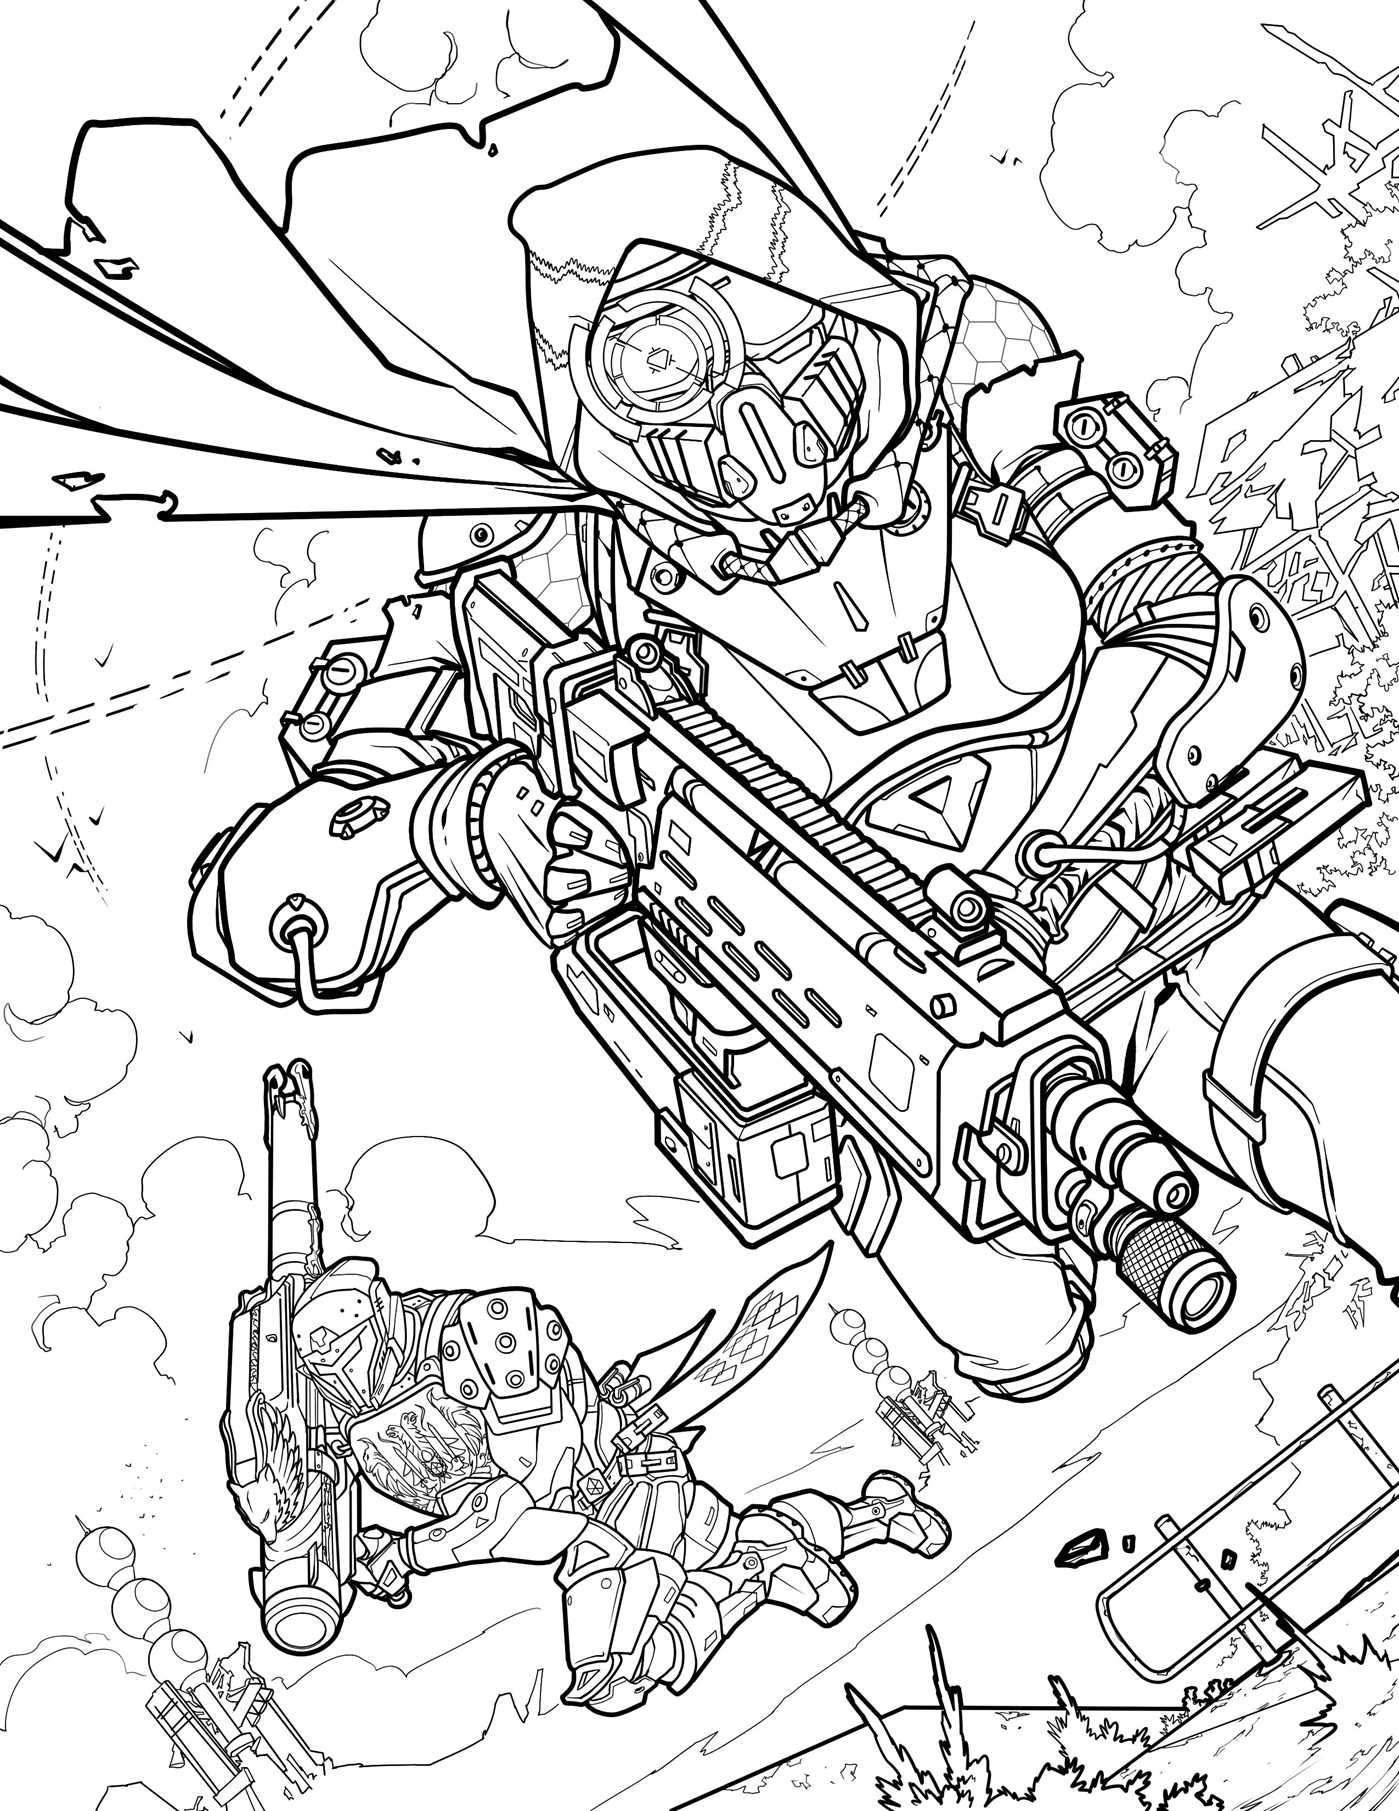 destiny coloring pages - destiny 2 un cahier a colorier officiel bientot disponible